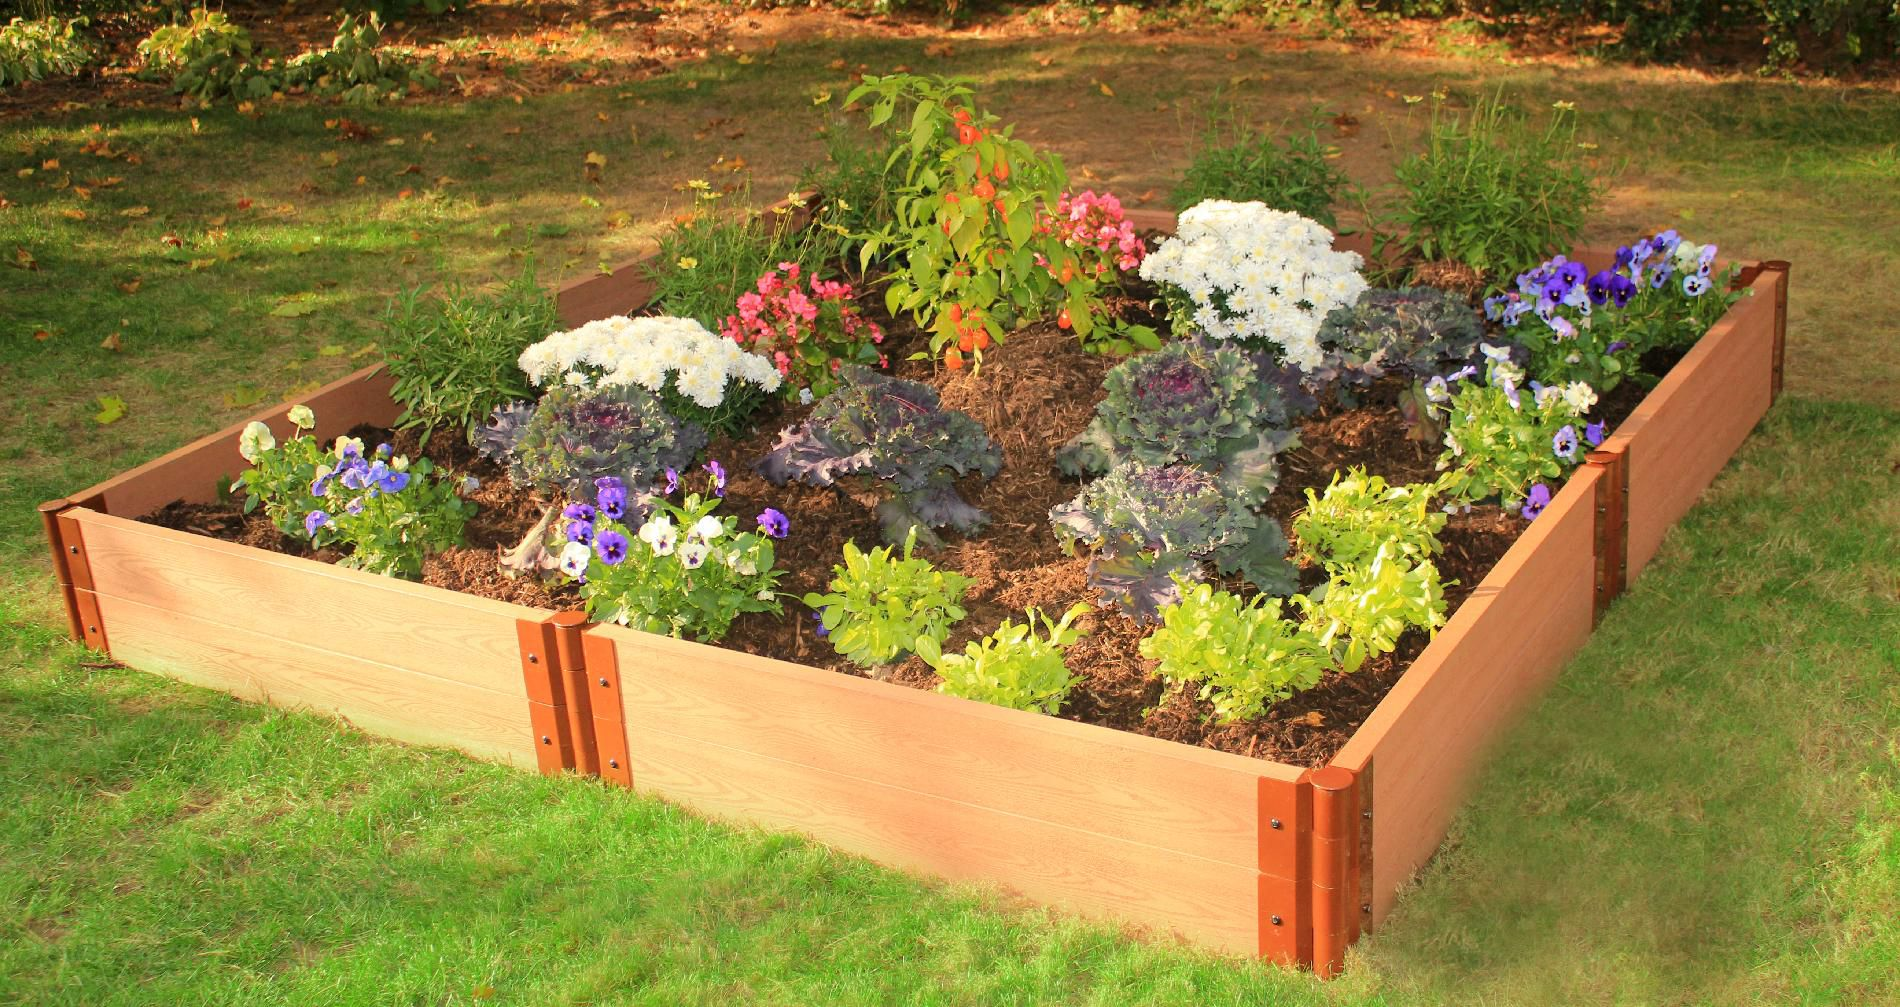 Frame It All Two Inch Series 8ft. x 8ft. x 11in. Composite Raised Garden Bed Kit